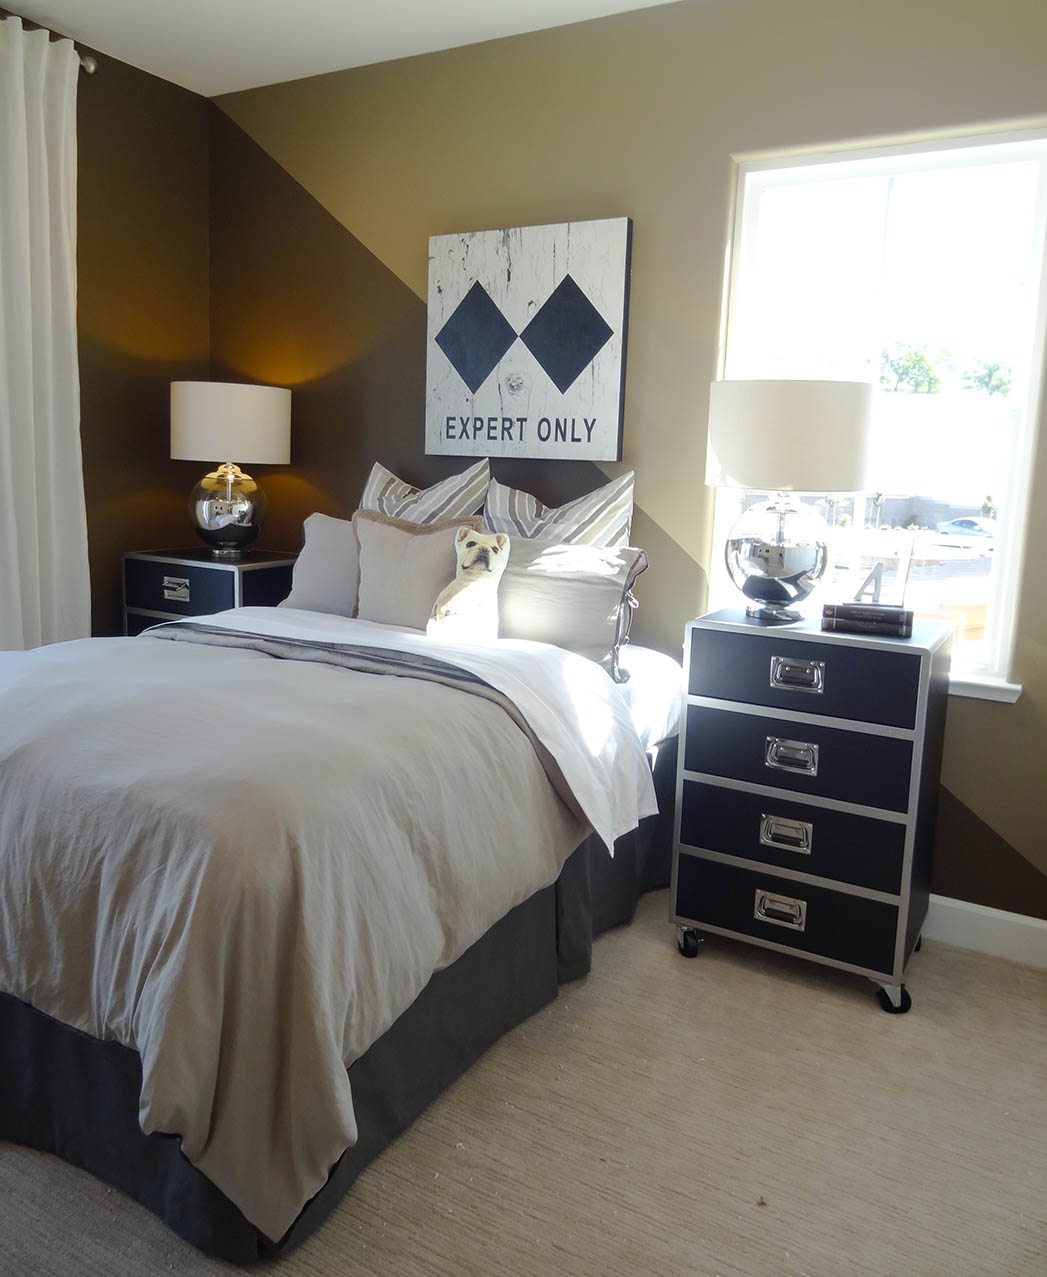 Diagonal Split Wall Paint Idea at Village at Promontory by CalAtlantic Homes